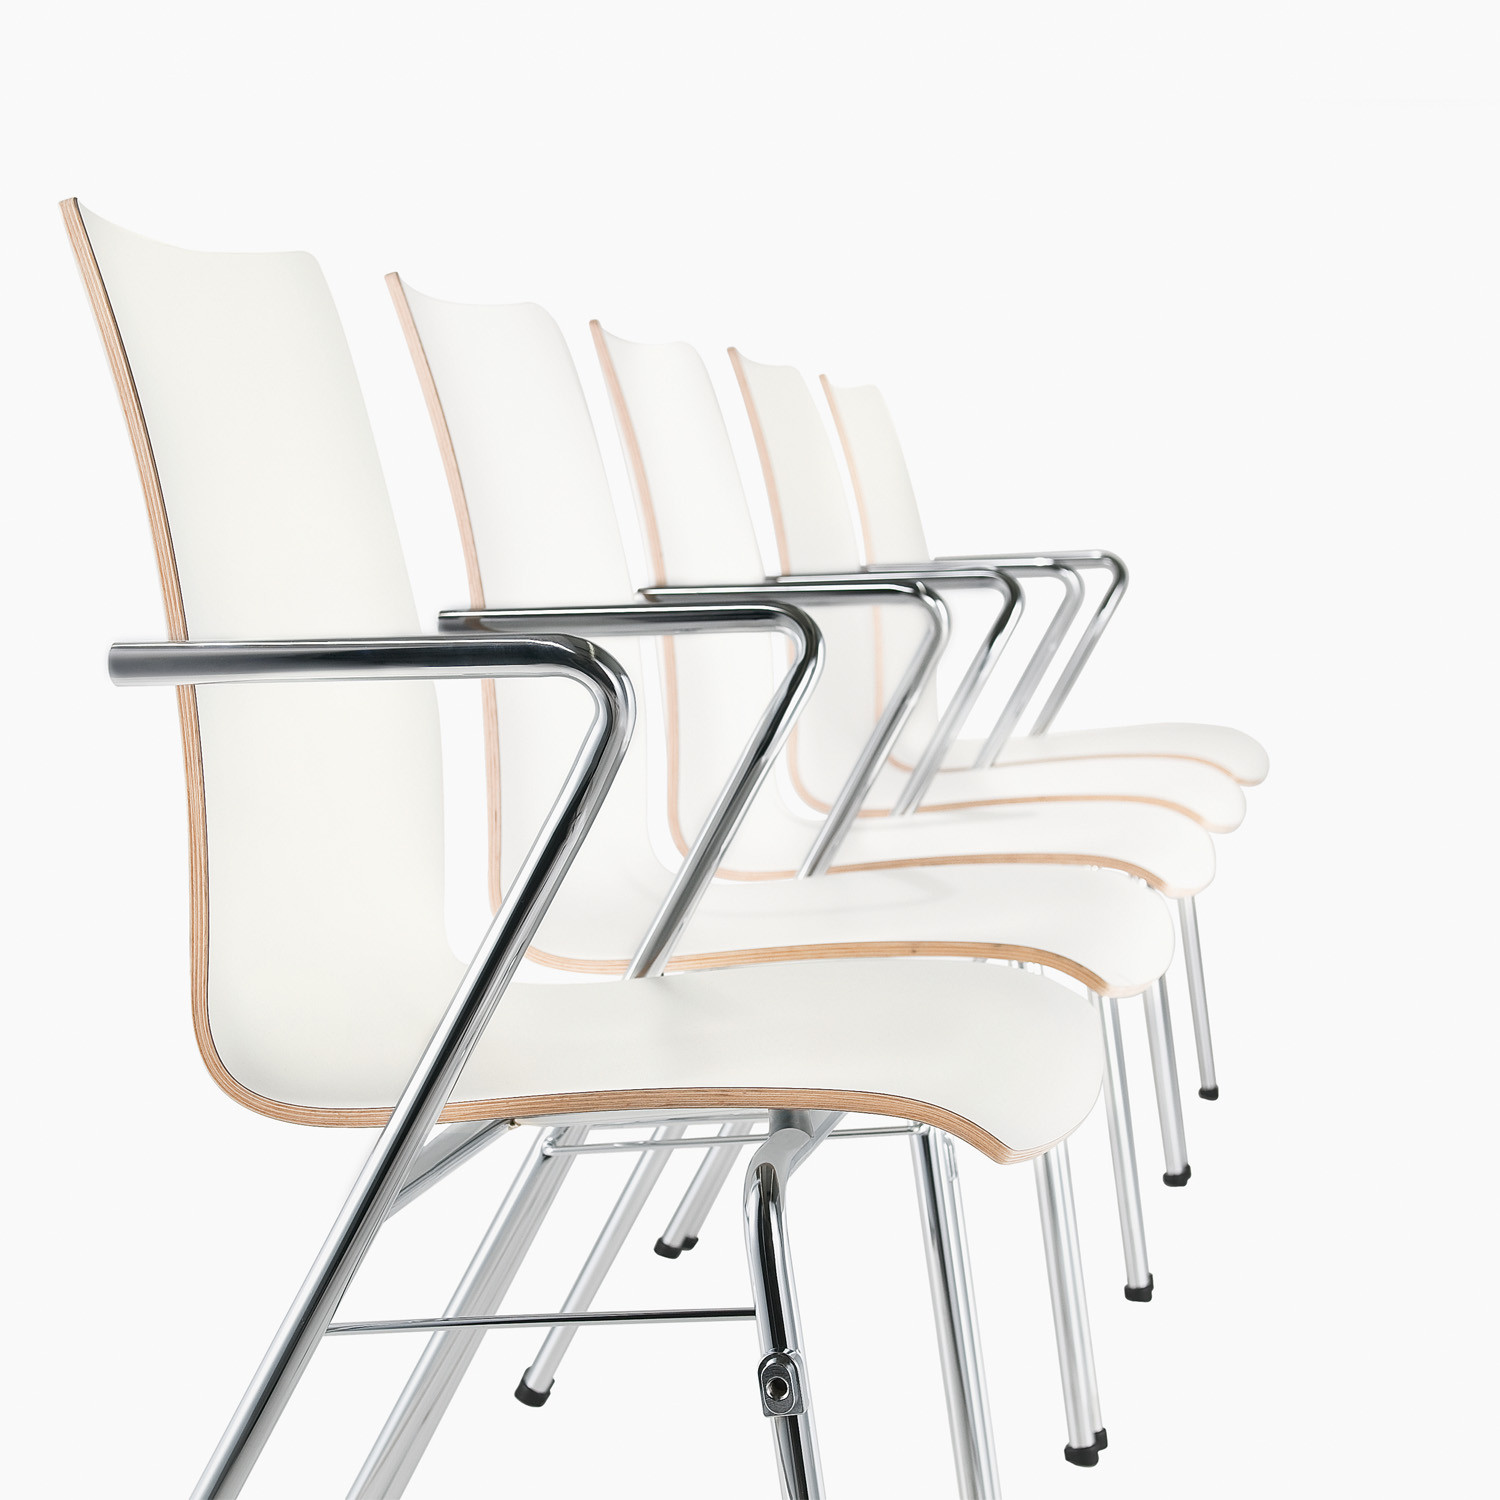 Tool 2 Chairs with hygienic metal finish armrests